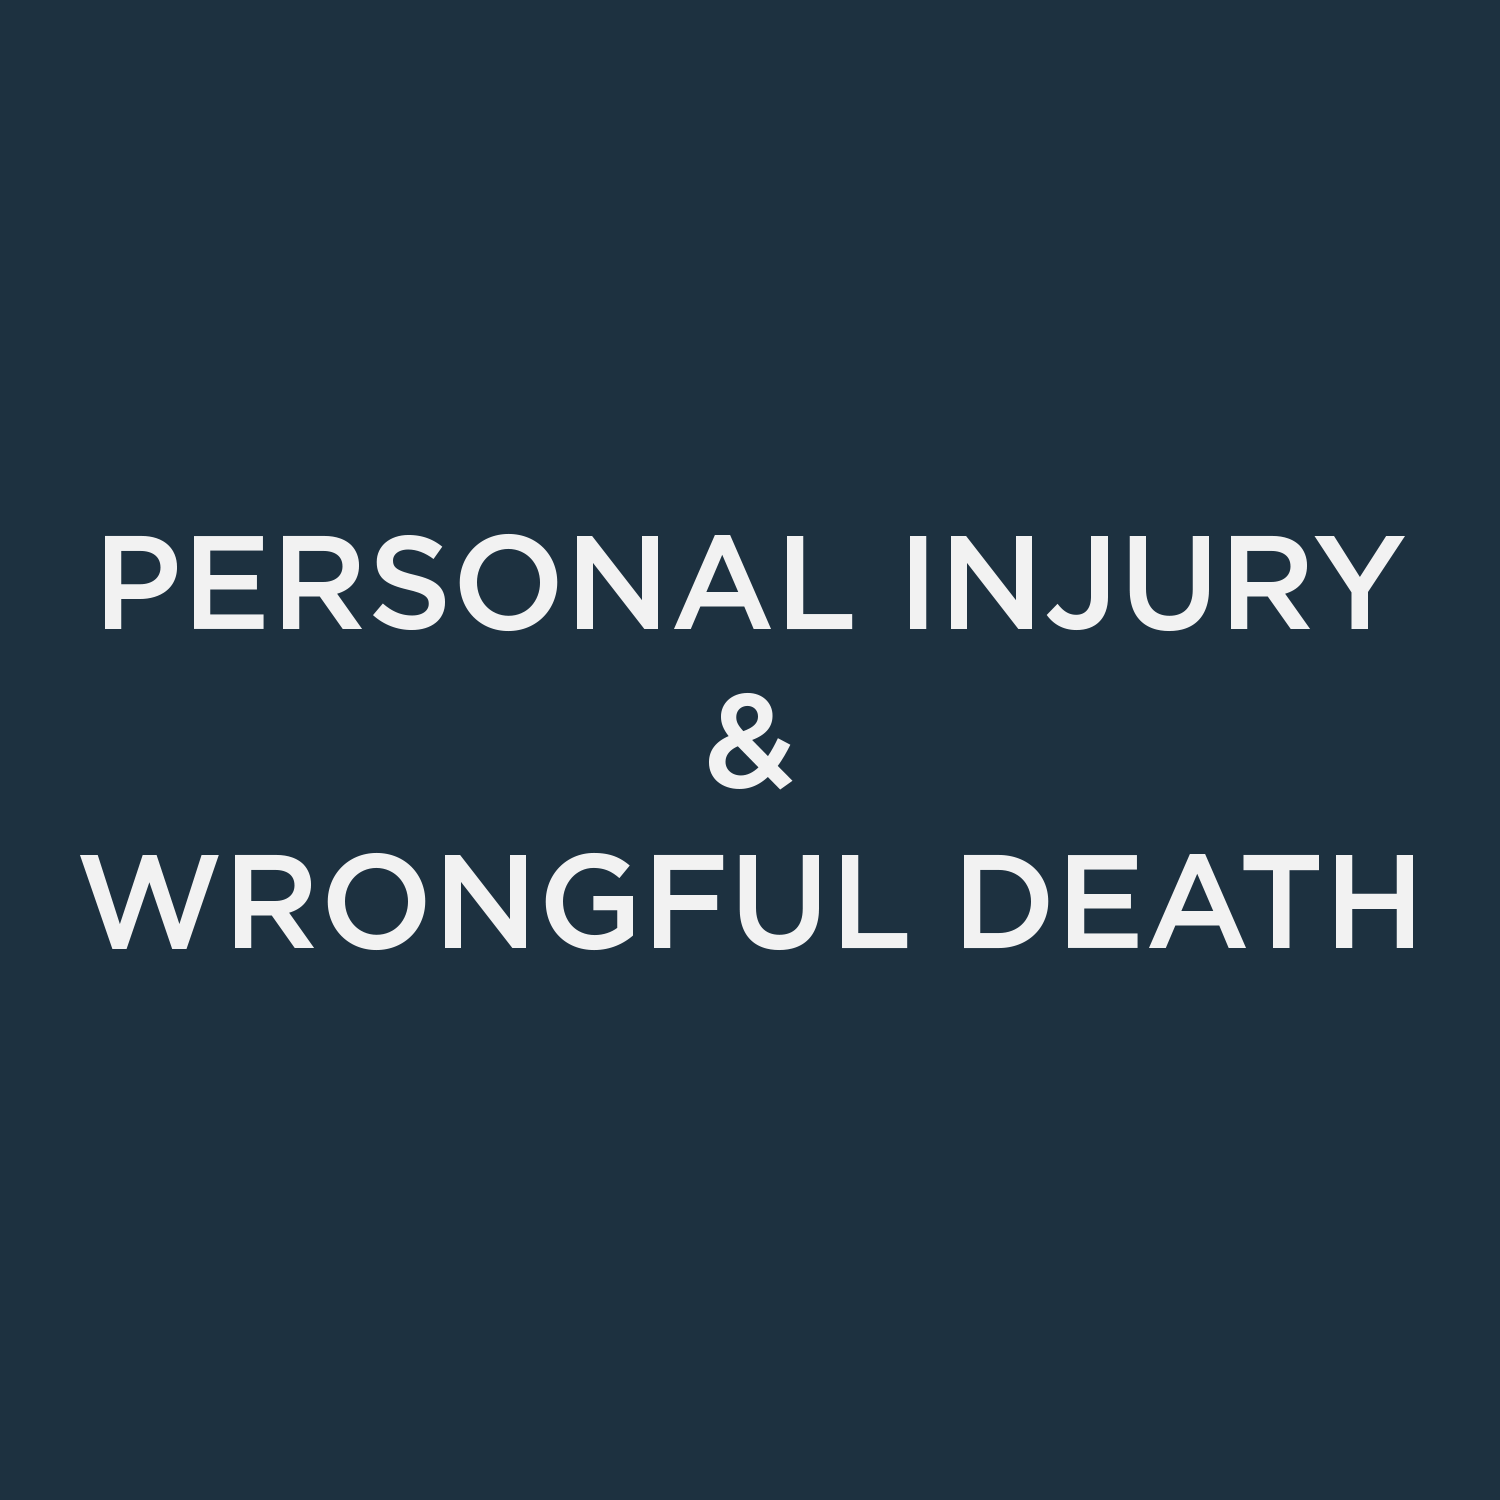 Personal Injury / Wrongful Death